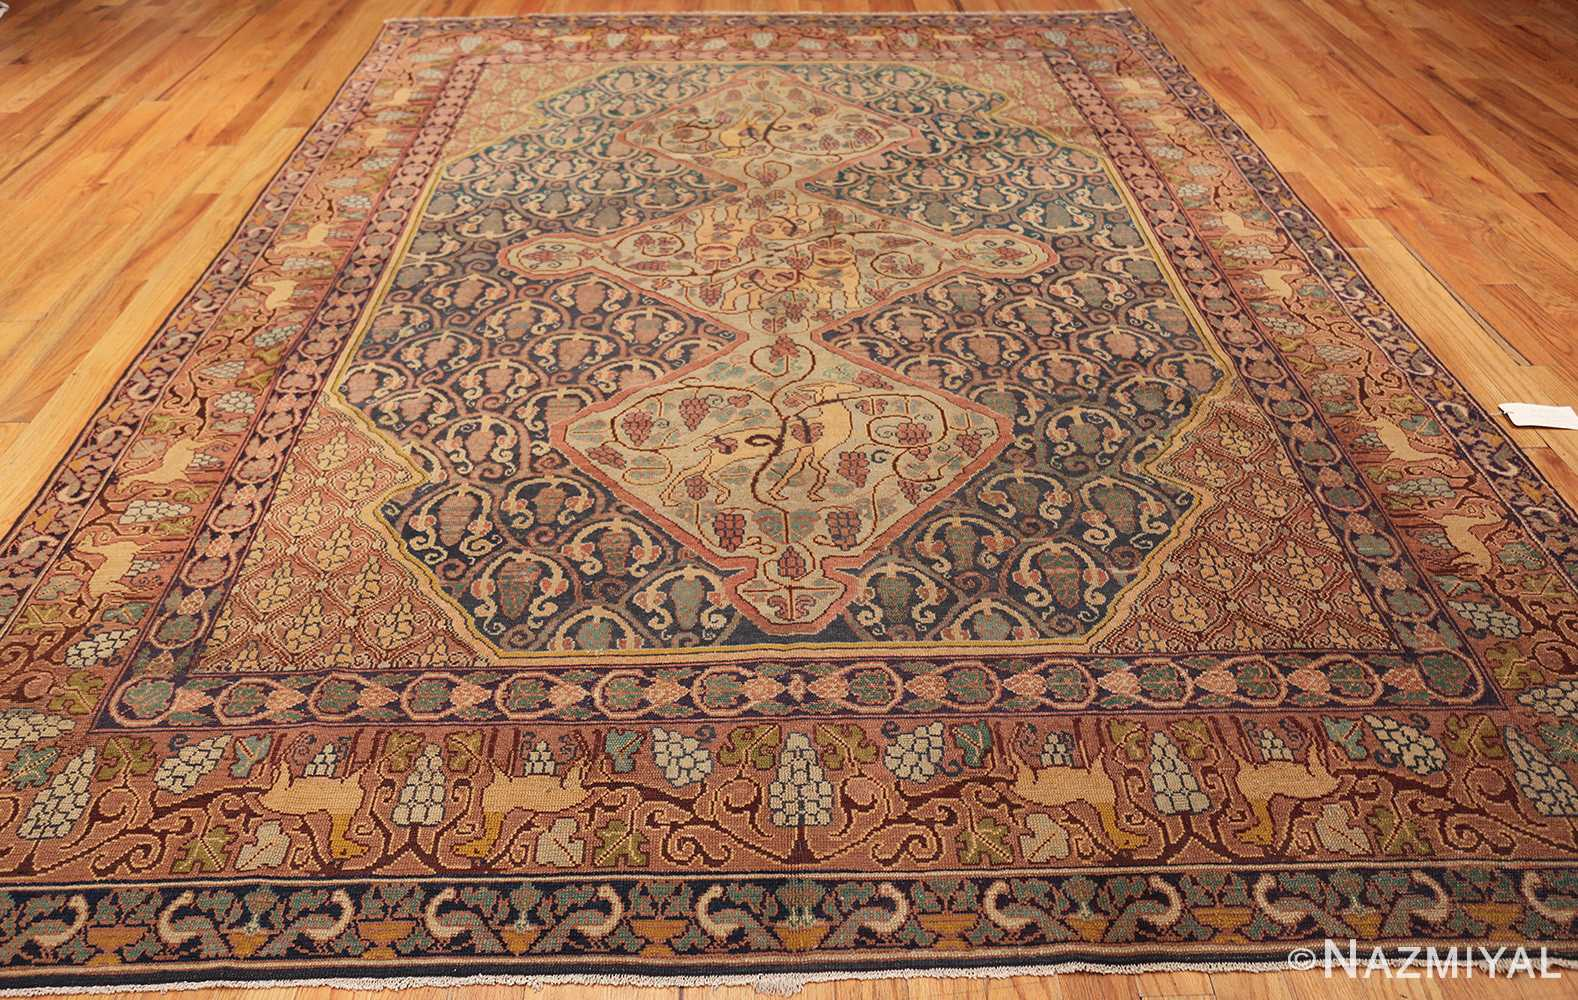 Antique Marbediah Israeli Carpet 47504 By Nazmiyal